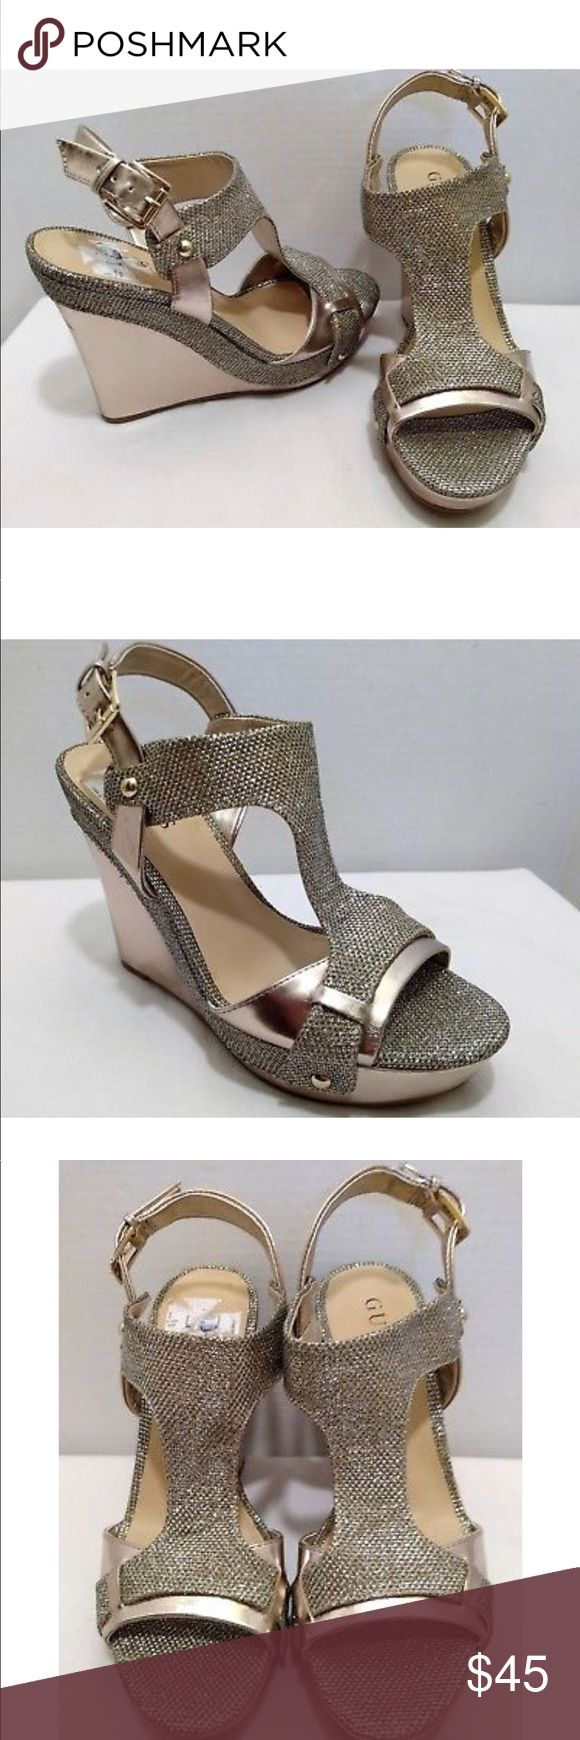 Guess Metallic Wedges Brand new without box. Size 10. Metallic wedge, has silver and gold notes. Platform wedge is 3.5 inches tall Guess Shoes Wedges